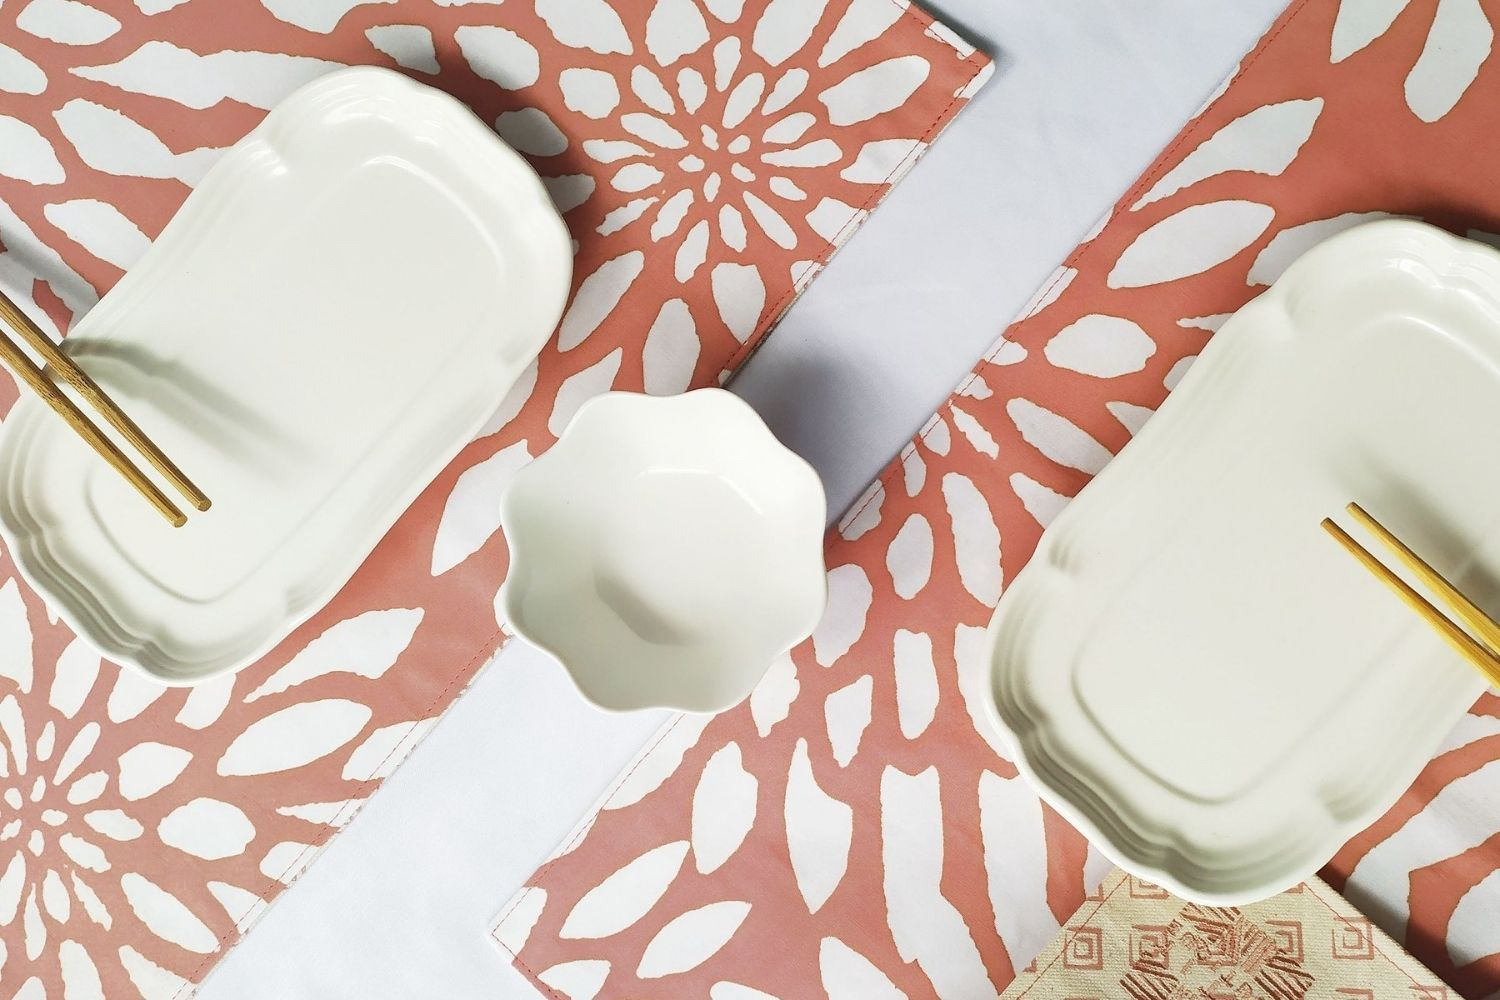 """Coral Bunga reversible placemat set of two, from <a href=""""https://www.thebatikboutique.com/collections/homeware/products/placemat-set-reversible-coral-bunga/"""" target=""""_blank"""" rel=""""noopener"""">The Batik Boutique</a>"""